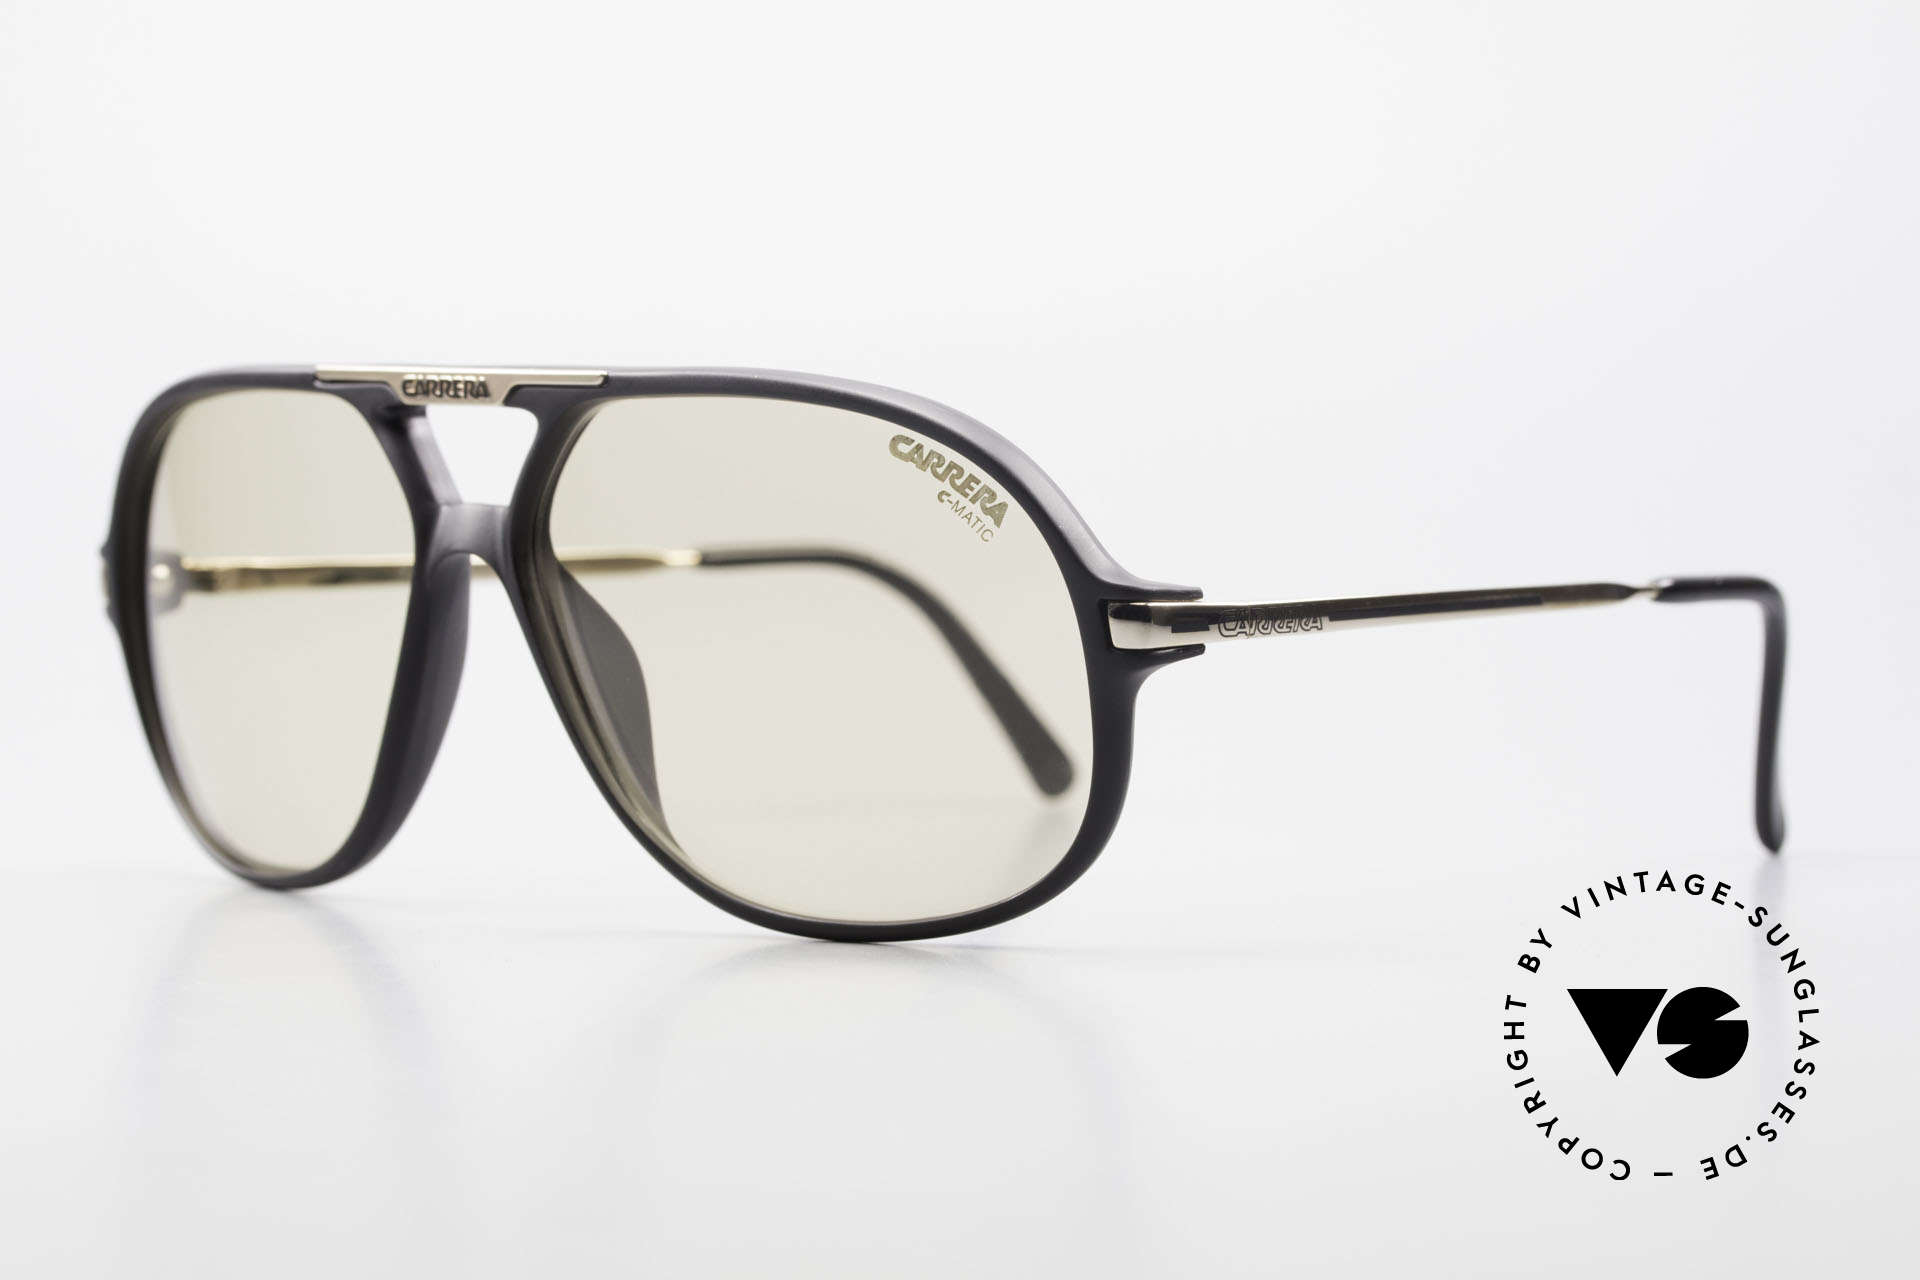 Carrera 5411 C-Matic With Extra Polarized Lenses, lenses are darker in the sun and lighter in the shade, Made for Men